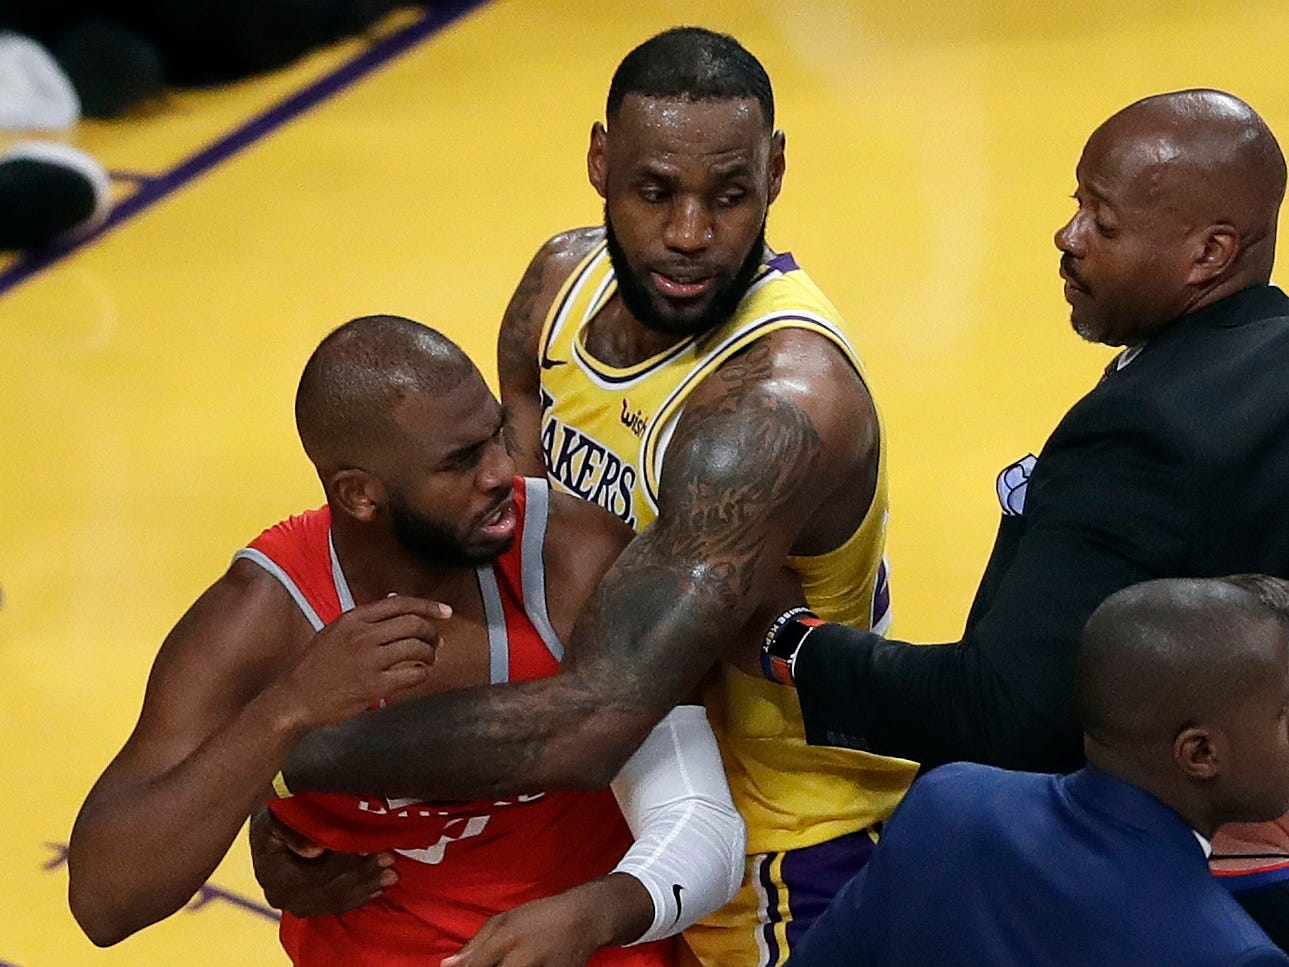 James' home debut with the Lakers took a chaotic turn when a wild brawl erupted against Chris Paul and the Rockets.